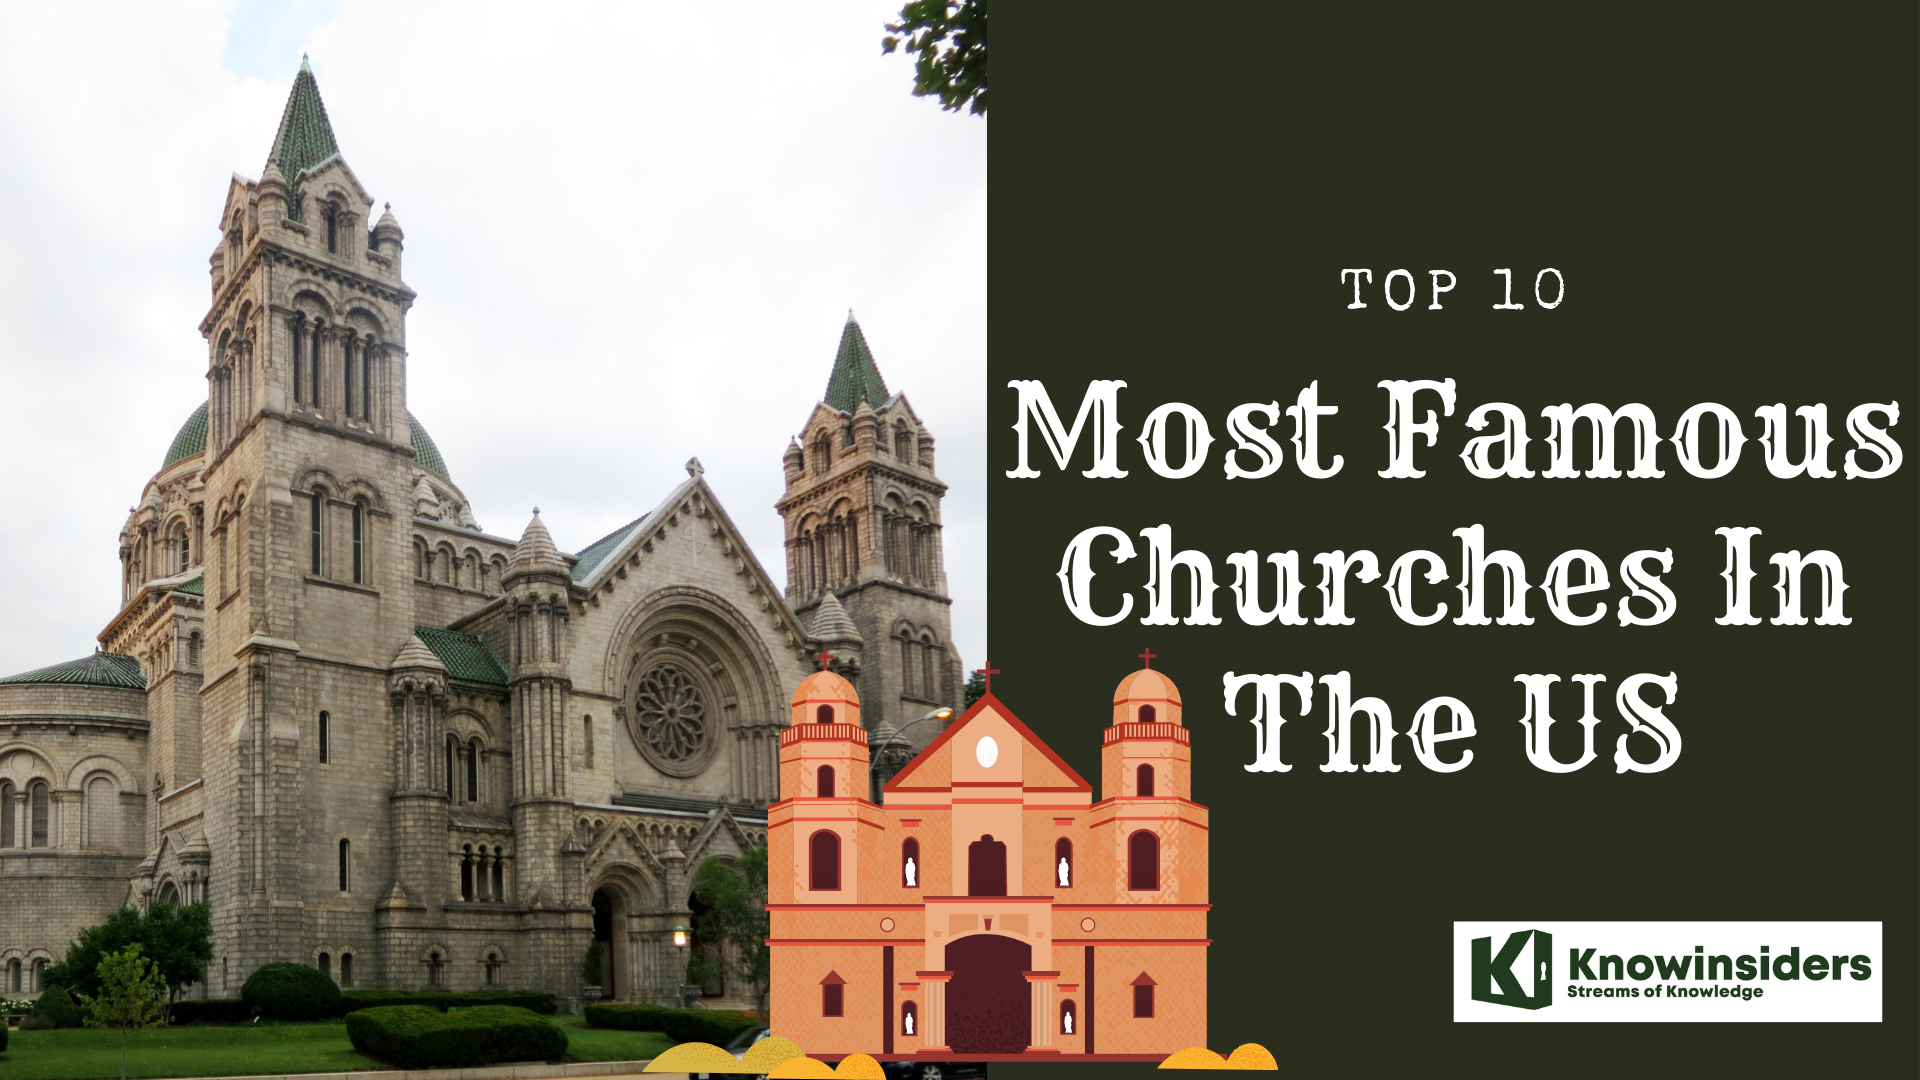 Top 10 most famous churches in the US